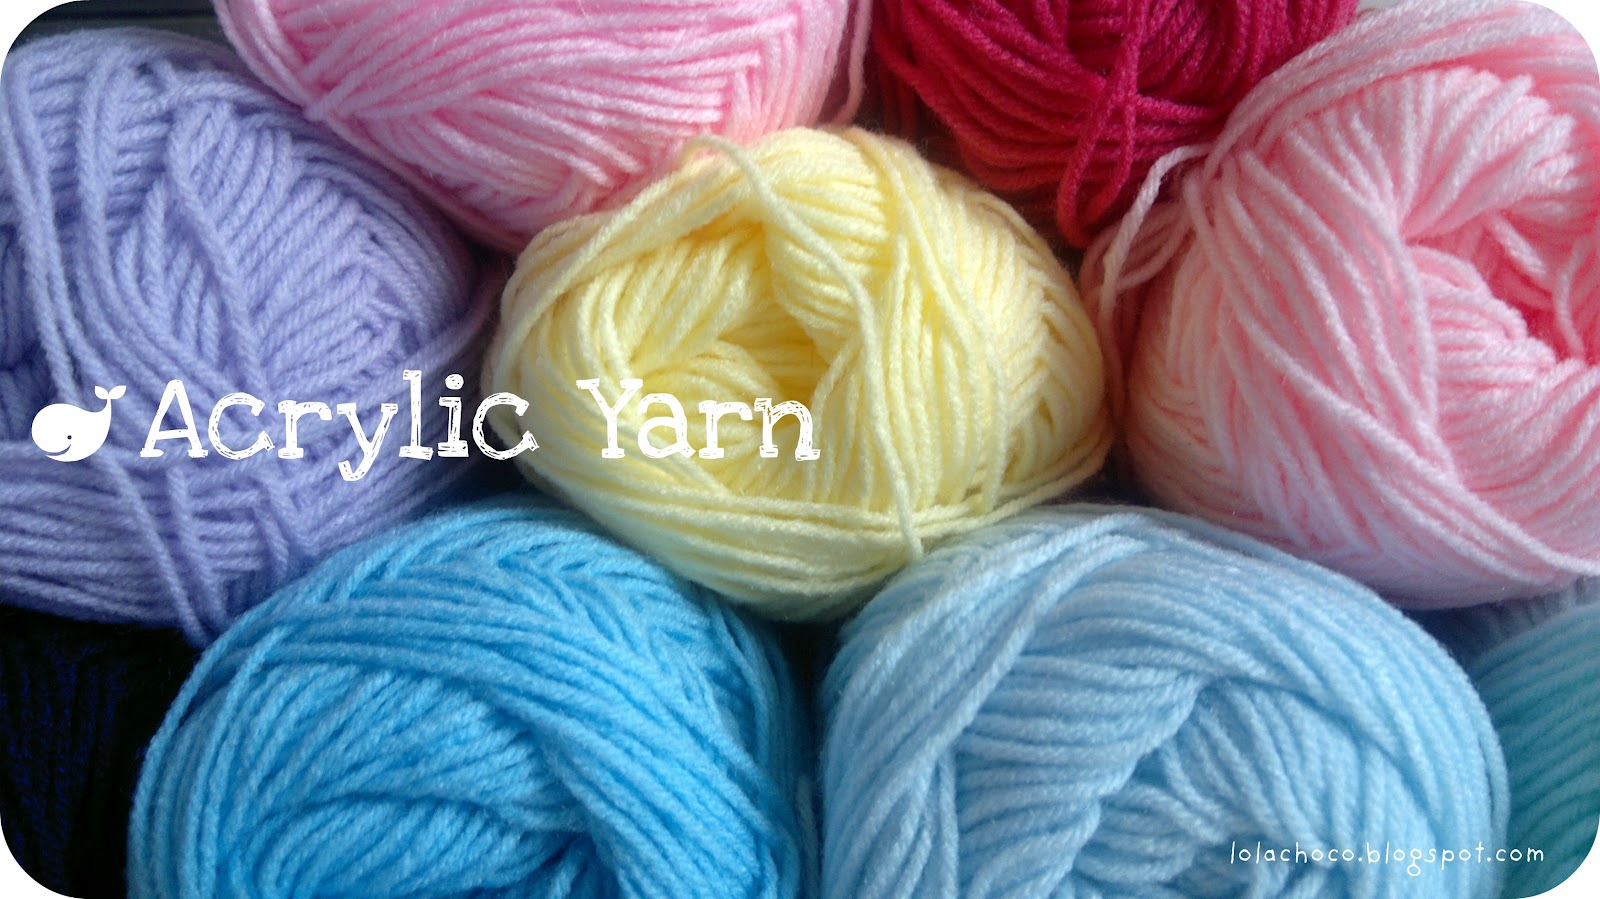 acrylic yarn this yarn is 100 % acrylic so enjoy